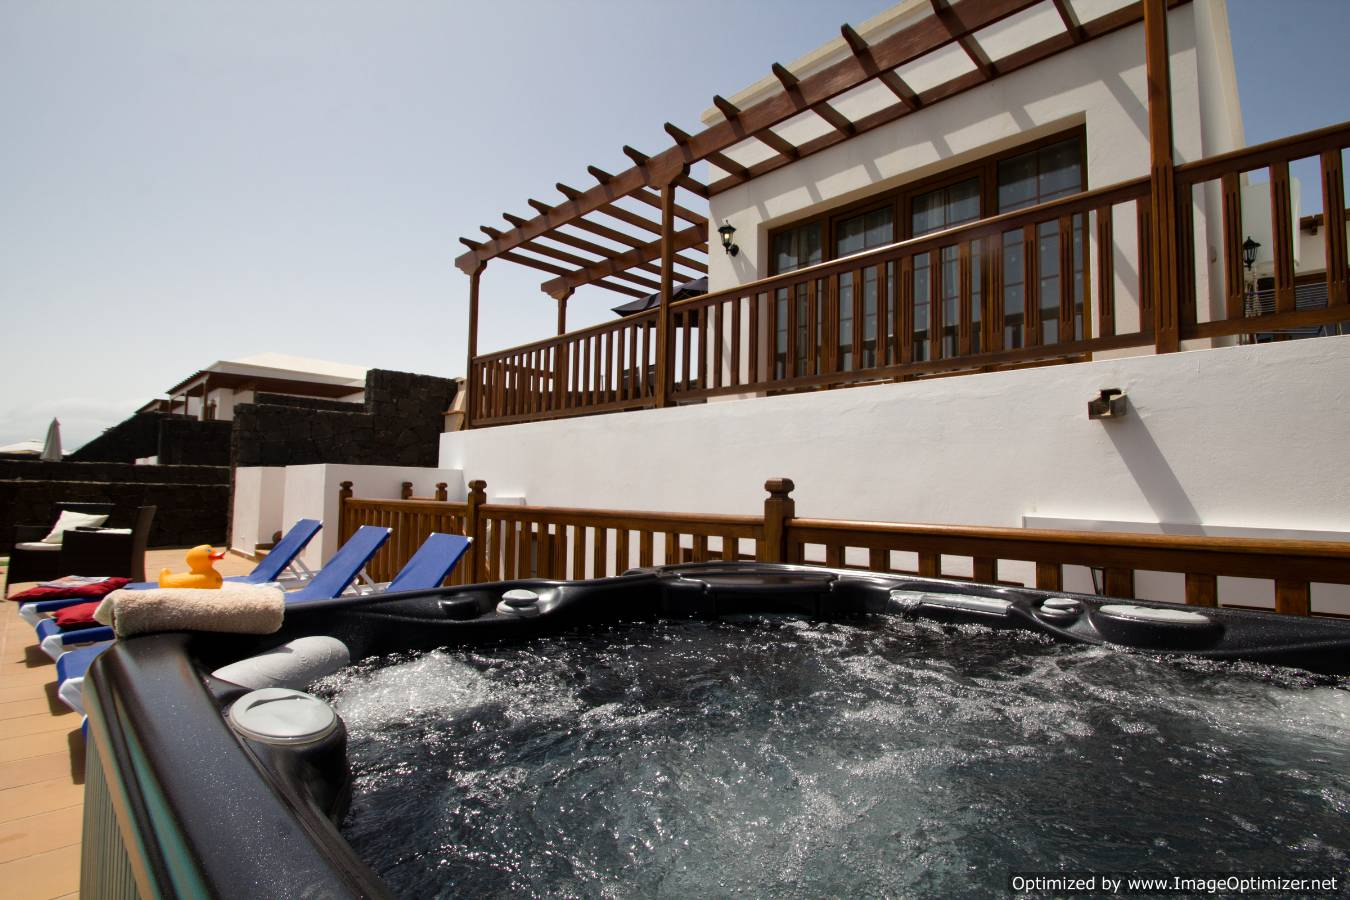 LVC258859 Villa with hot tub in Playa Blanca